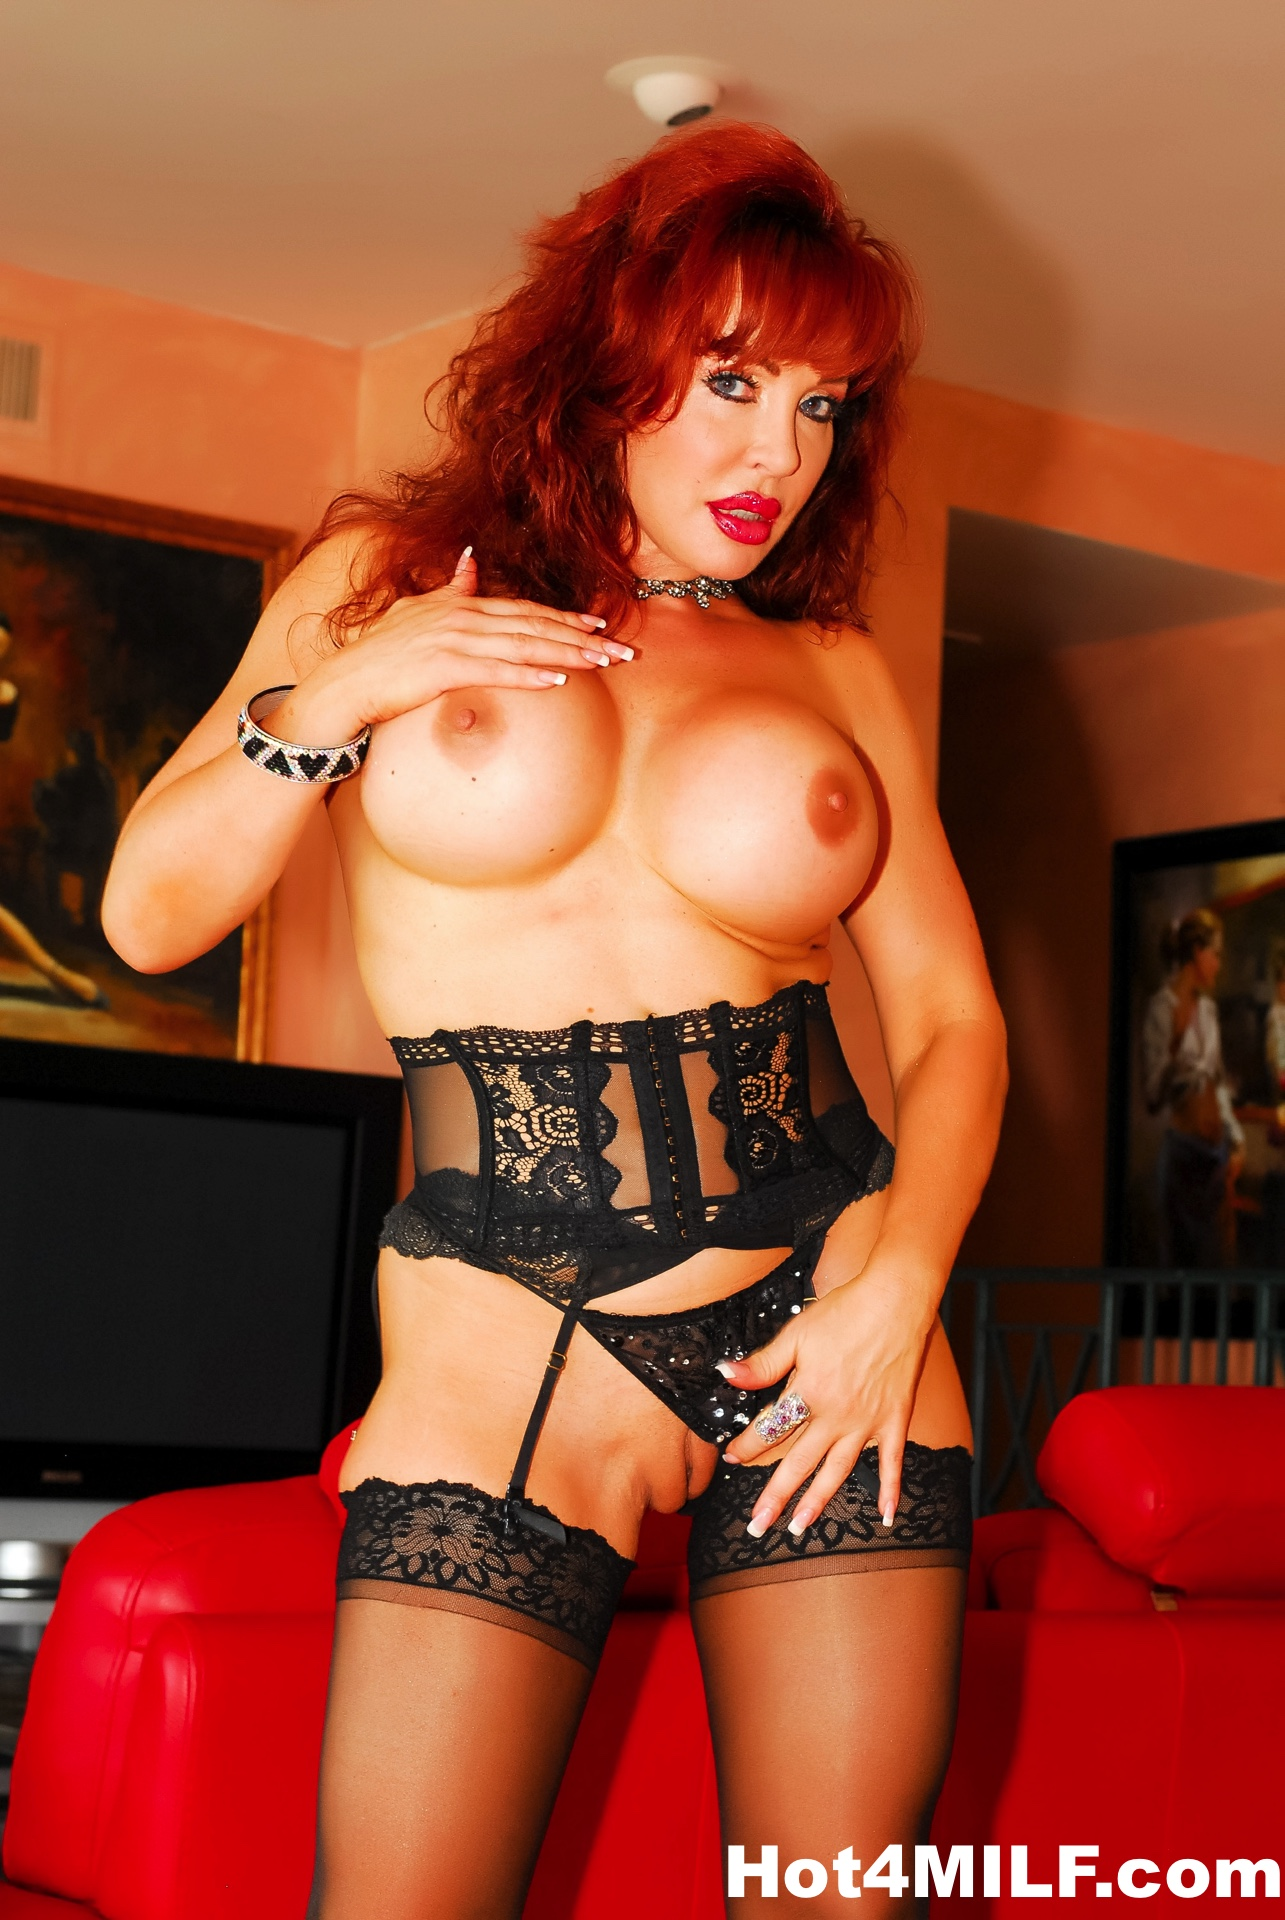 Redhead Milf Shows Off Her Big Tits And Lingerie 124247-2746